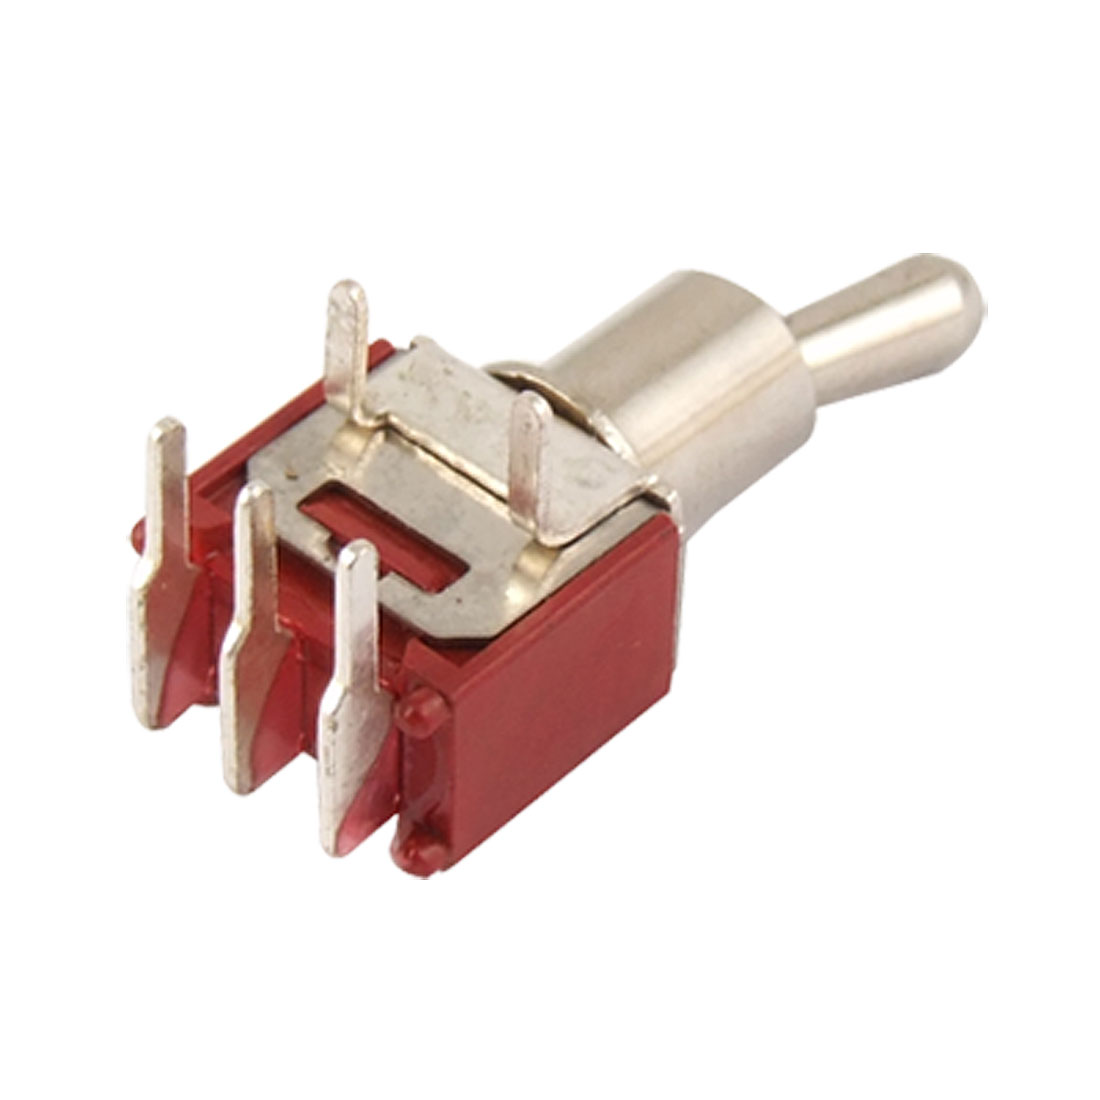 AC 250V/1.5A Prong Ternimal 2 Position On/On SPDT Mini Toggle Switch